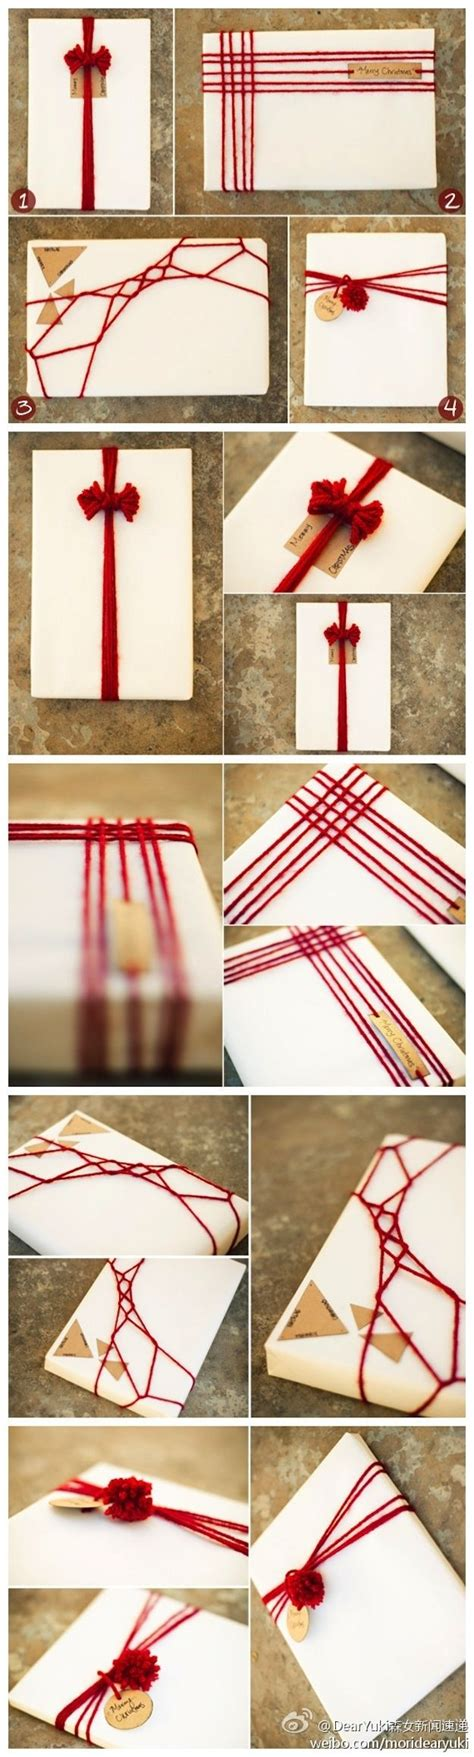 present wrapping tips 3 easy gift wrap ideas creative gift wrap ideas